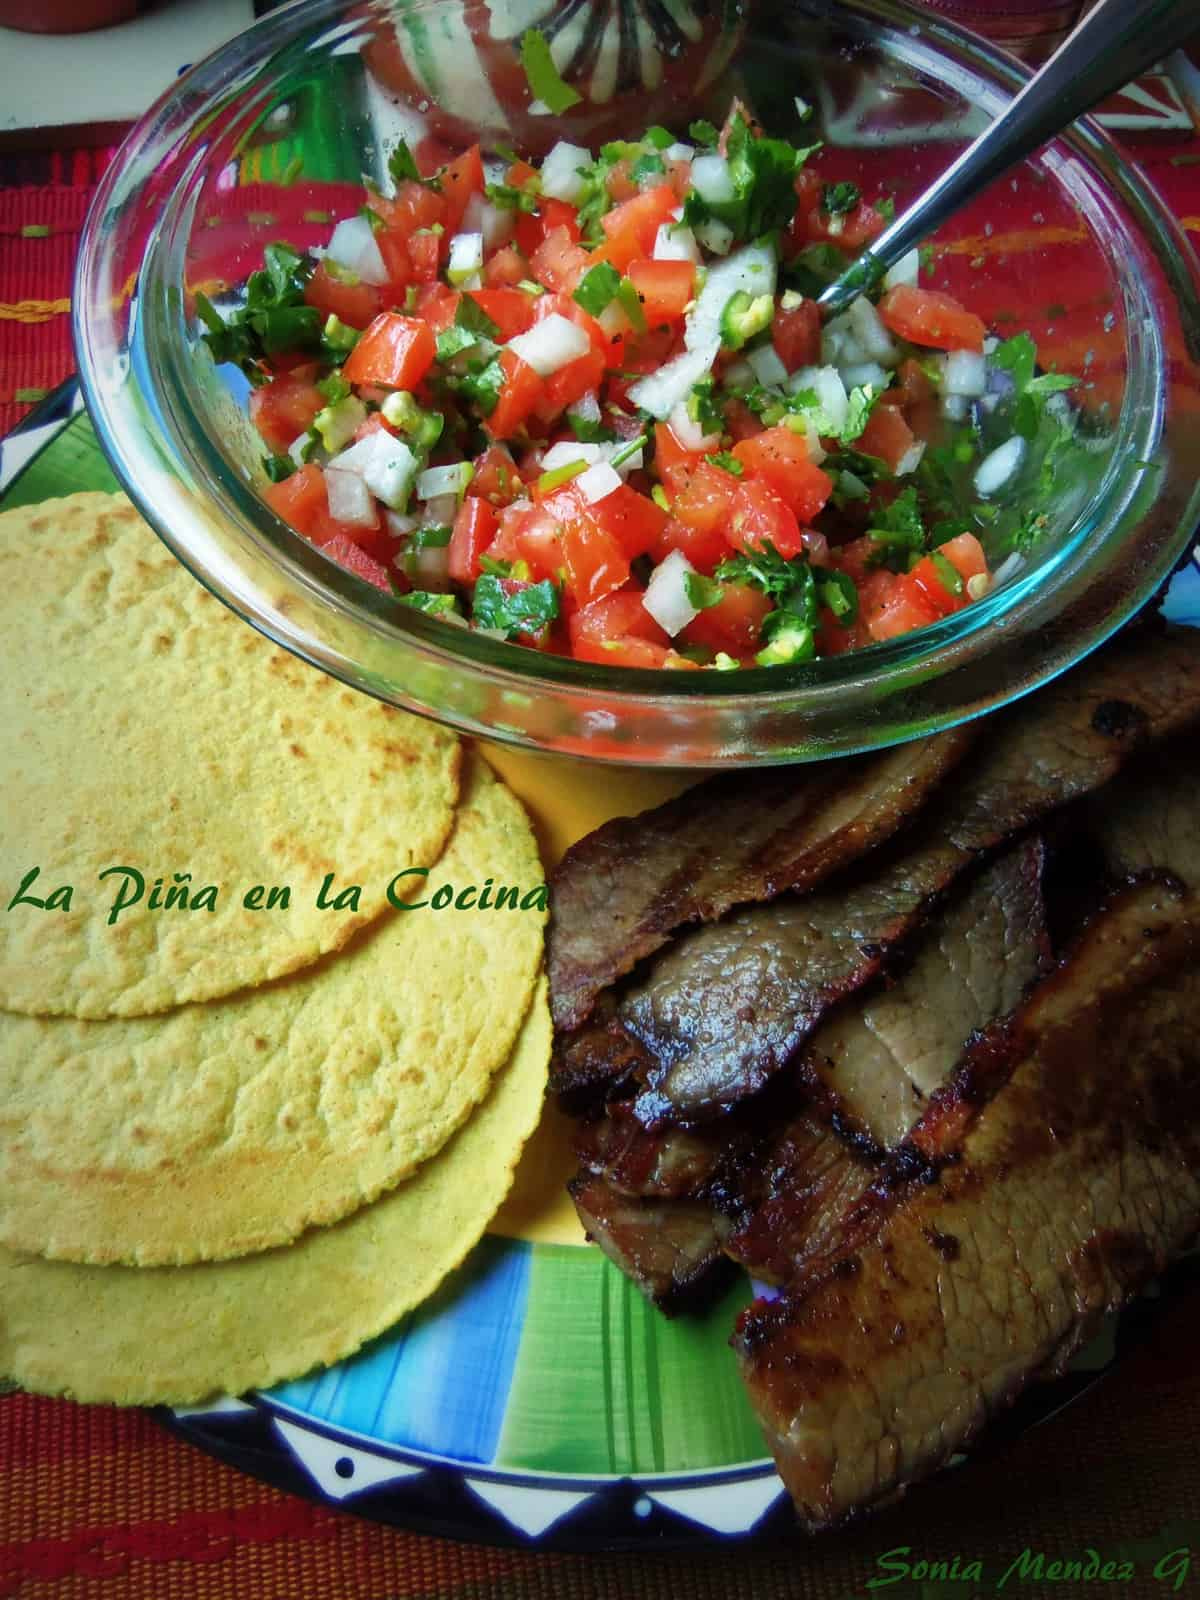 Smoked Beef Brisket, Pico de Gallo and Fresh Corn Tortillas